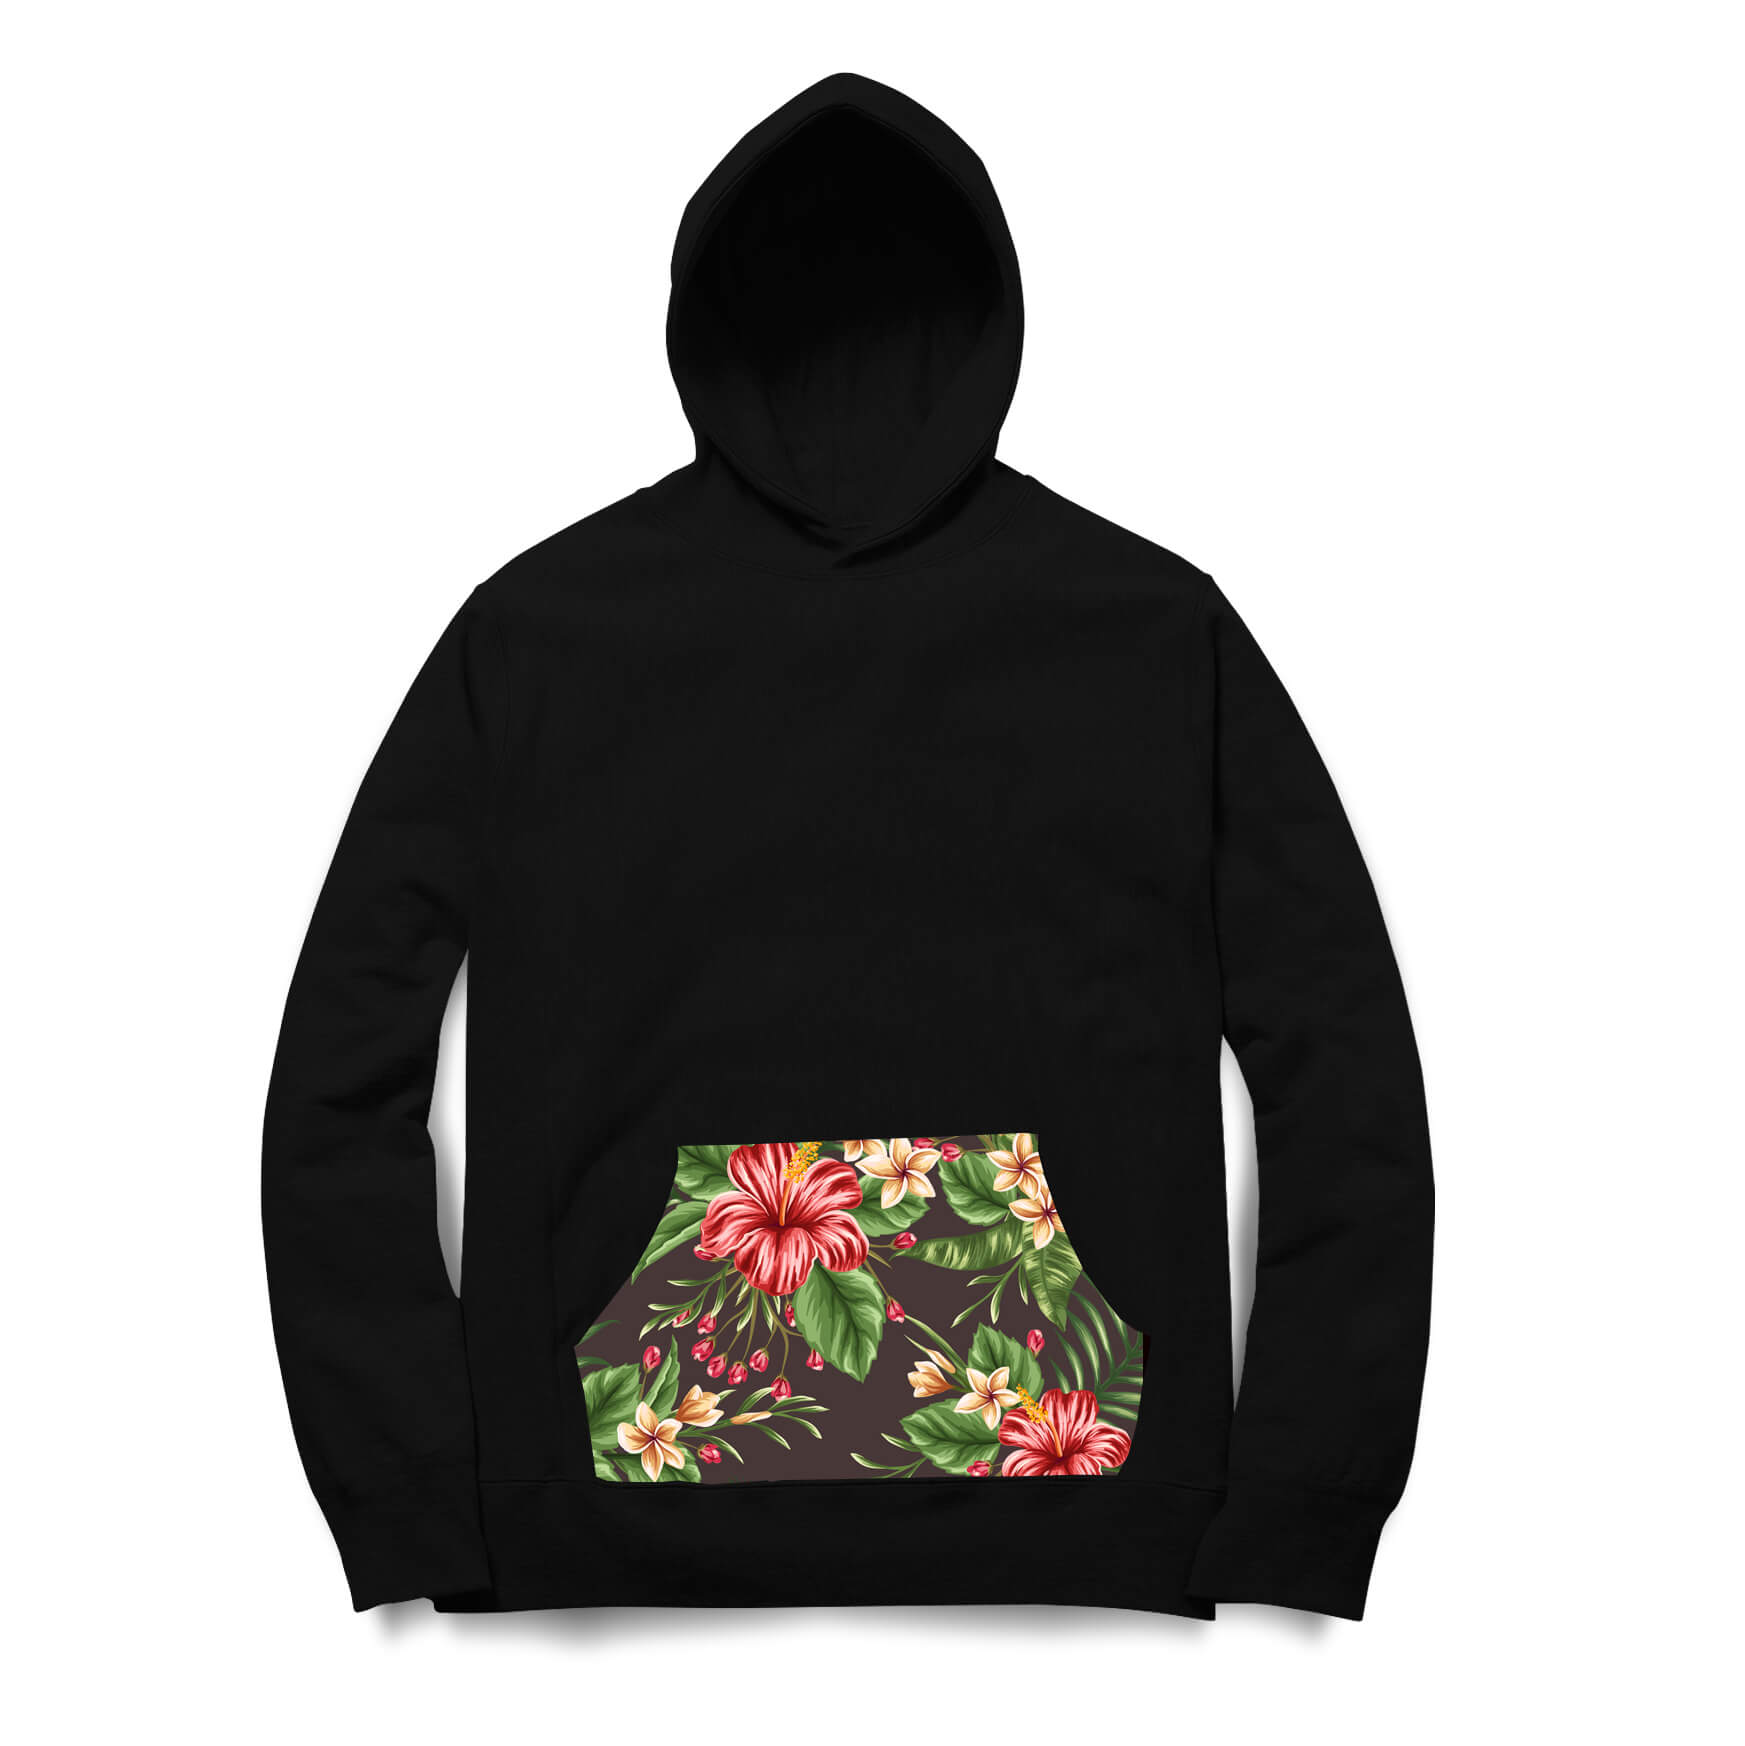 Moletom Skill Head Flowers leaves Preto